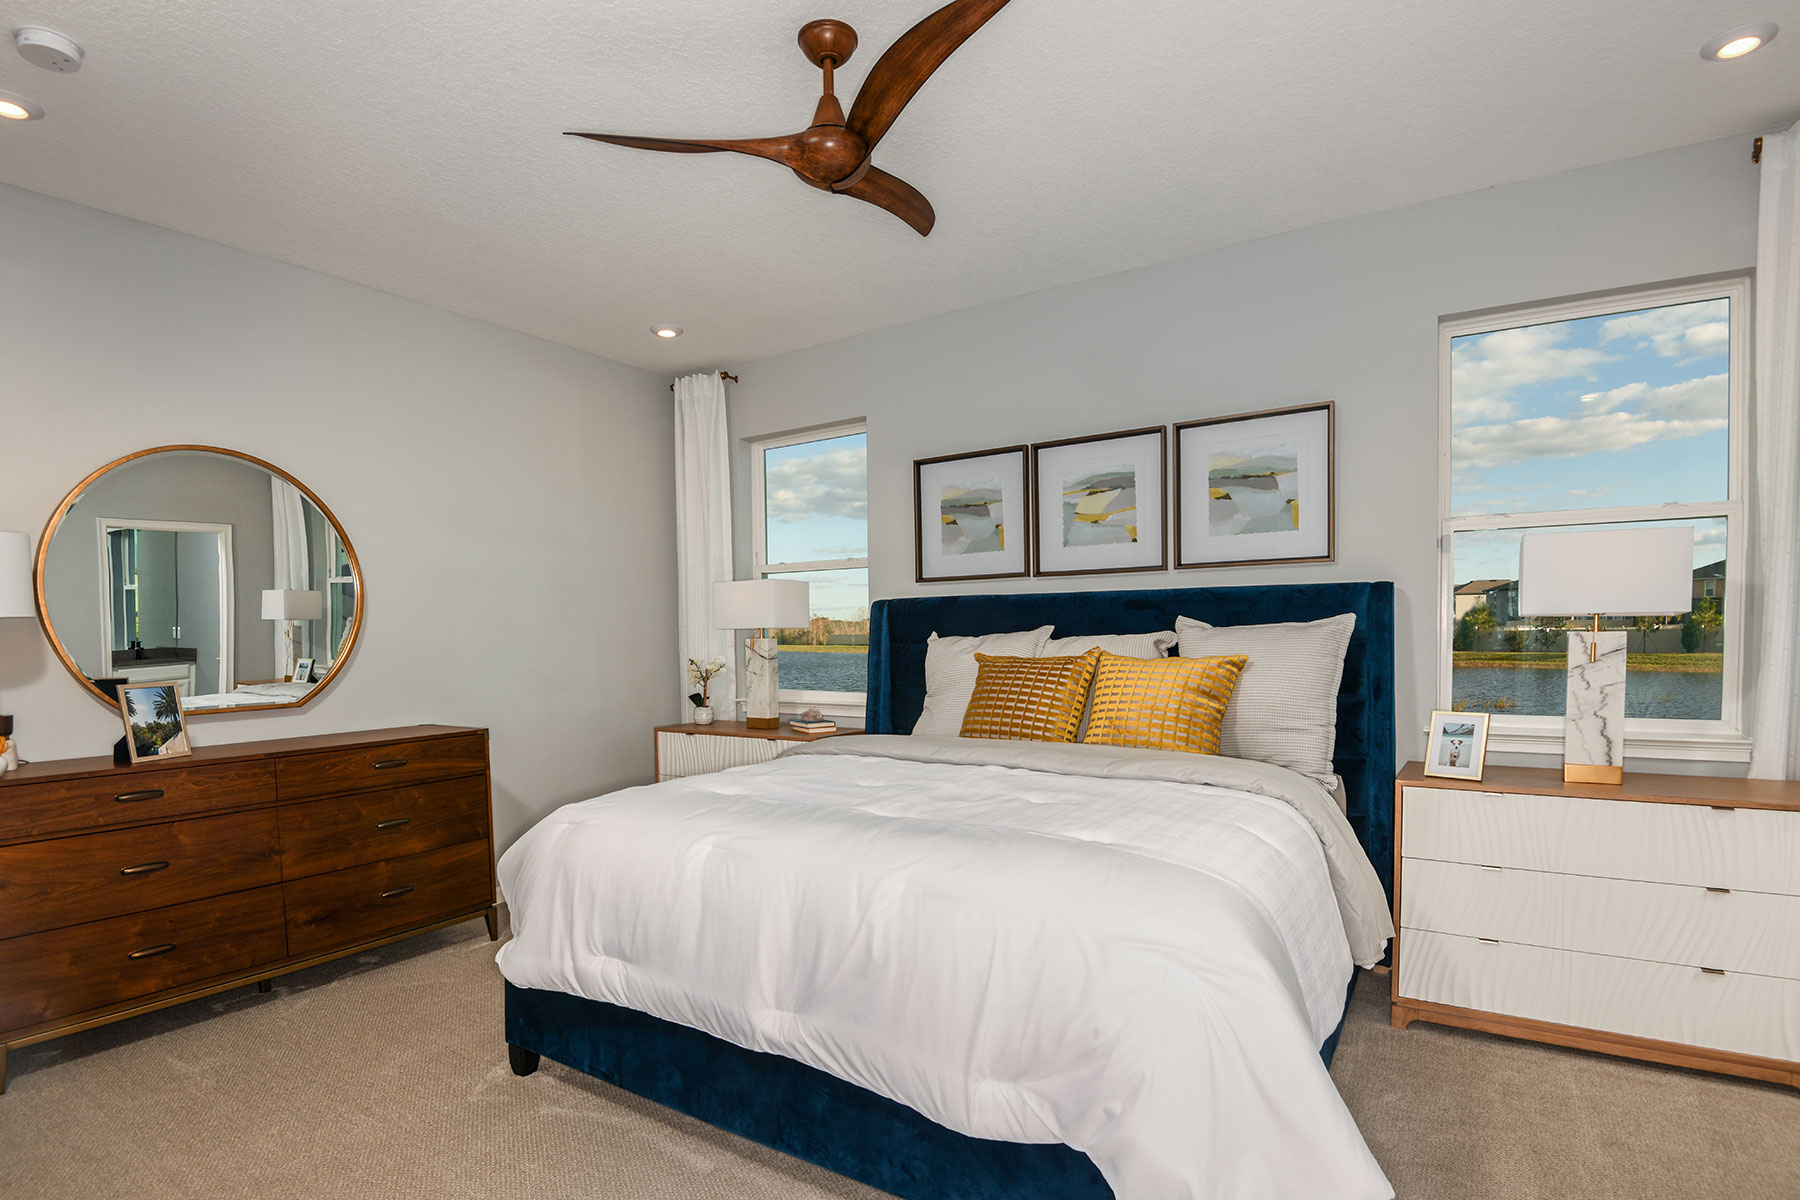 Amelia II Plan Bedroom at Parkview at Long Lake Ranch in Lutz Florida by Mattamy Homes